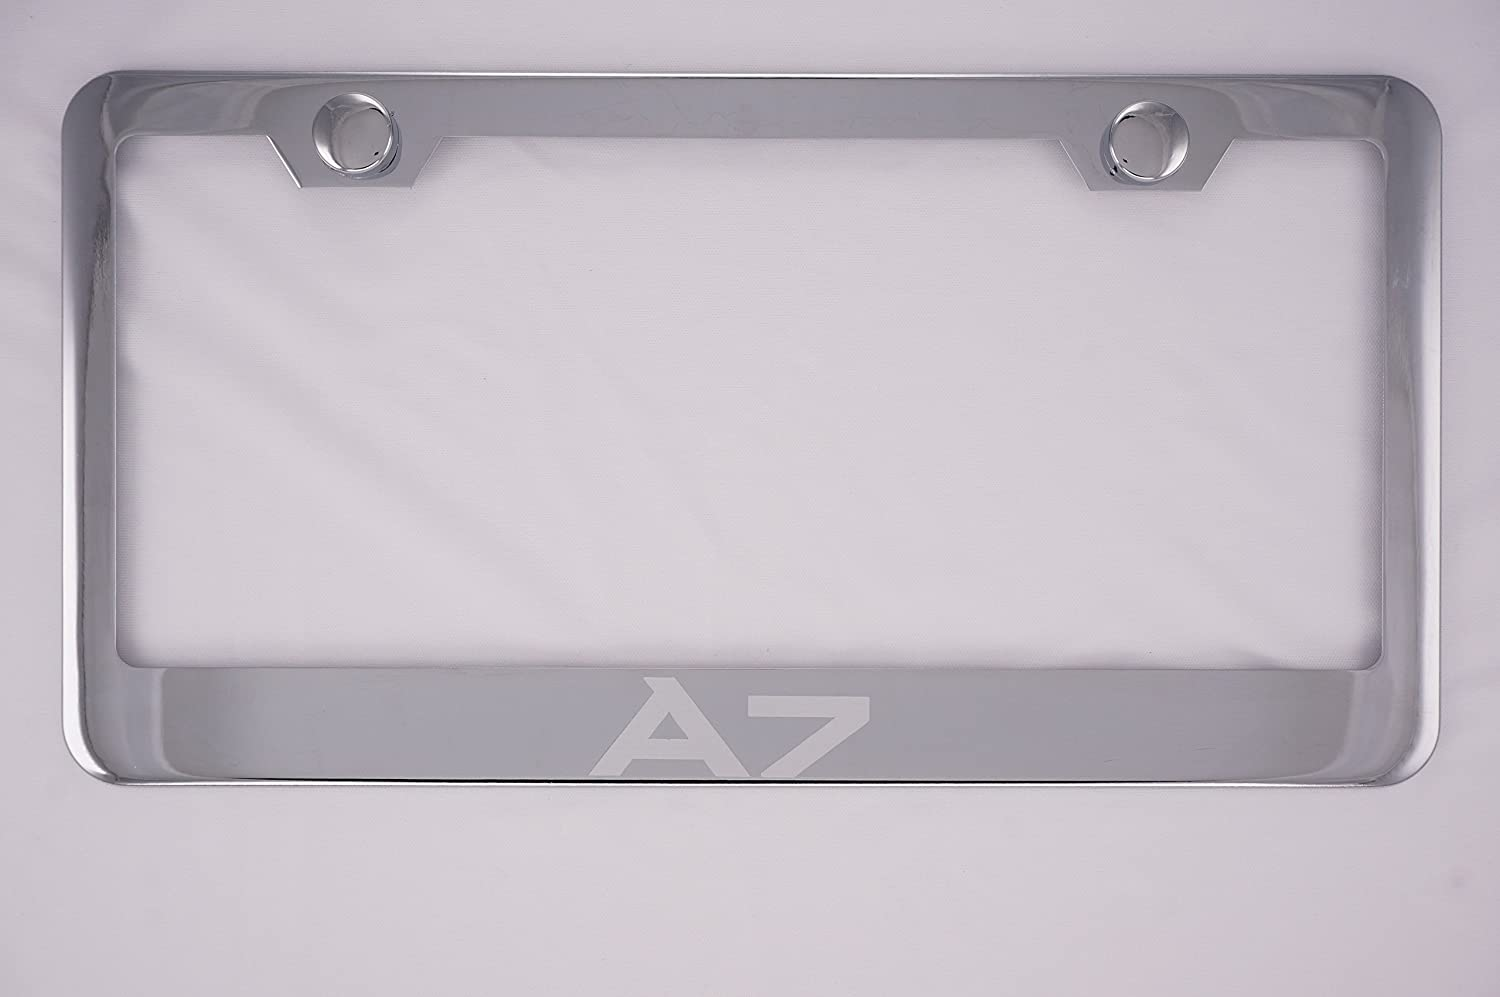 2 x PREMIUM CHROME STAINLESS STEEL NUMBER PLATE SURROUND HOLDER FOR AUDI